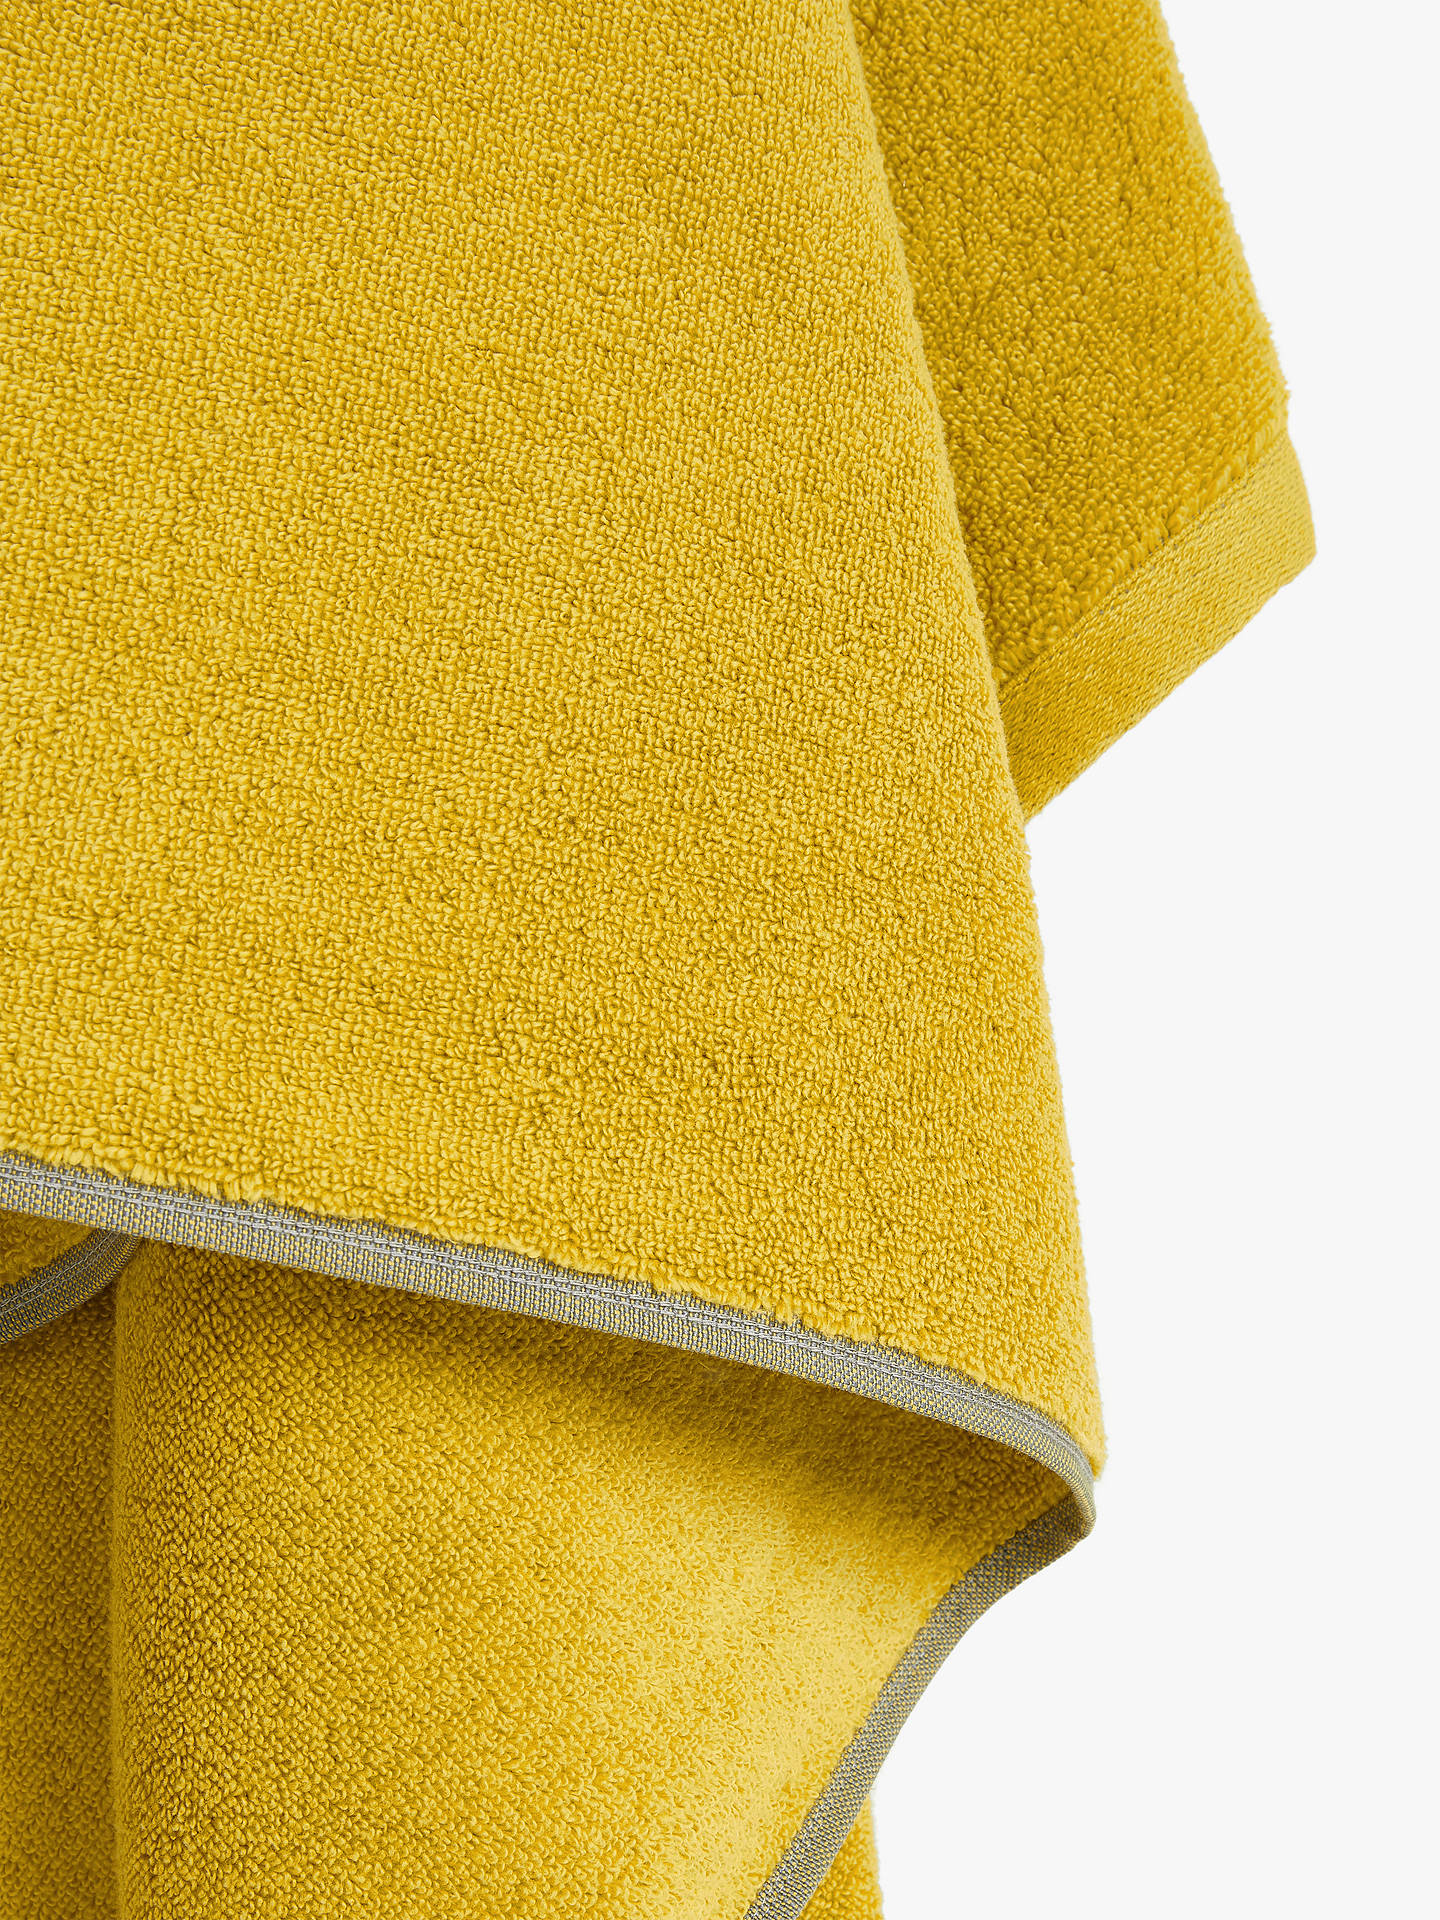 BuyHouse by John Lewis Quick Dry Face Cloth, Mustard Online at johnlewis.com